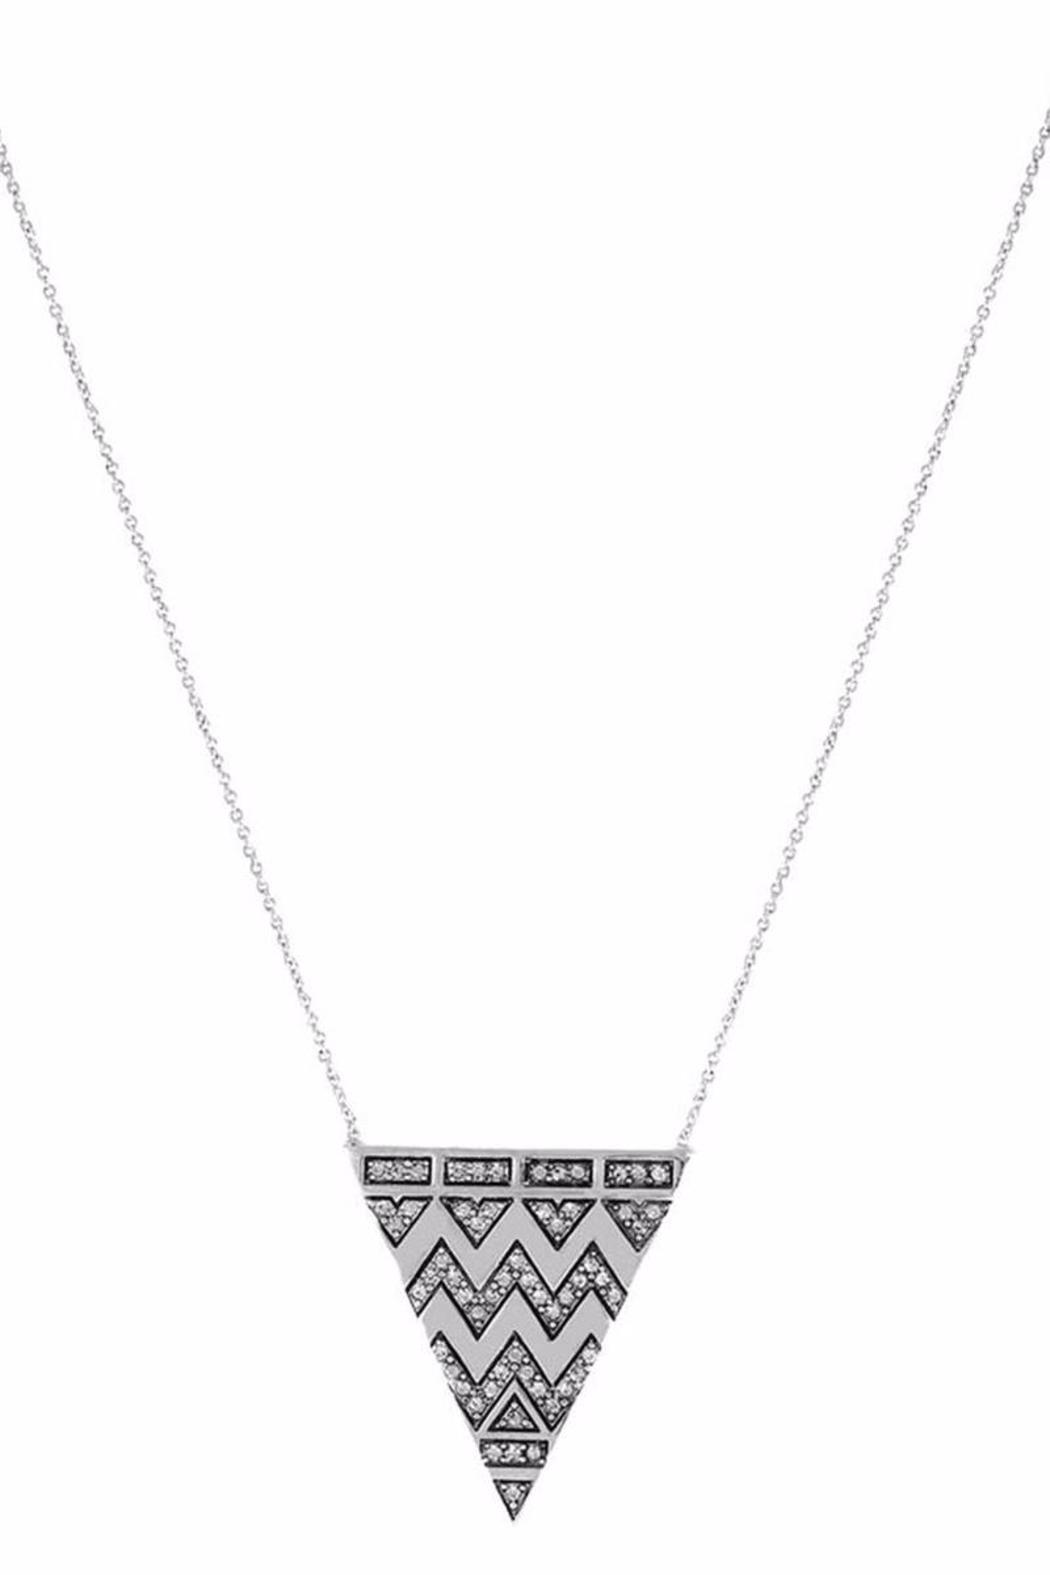 Tribal Triangle Pendant from Ohio by Emleigh's and Mama B